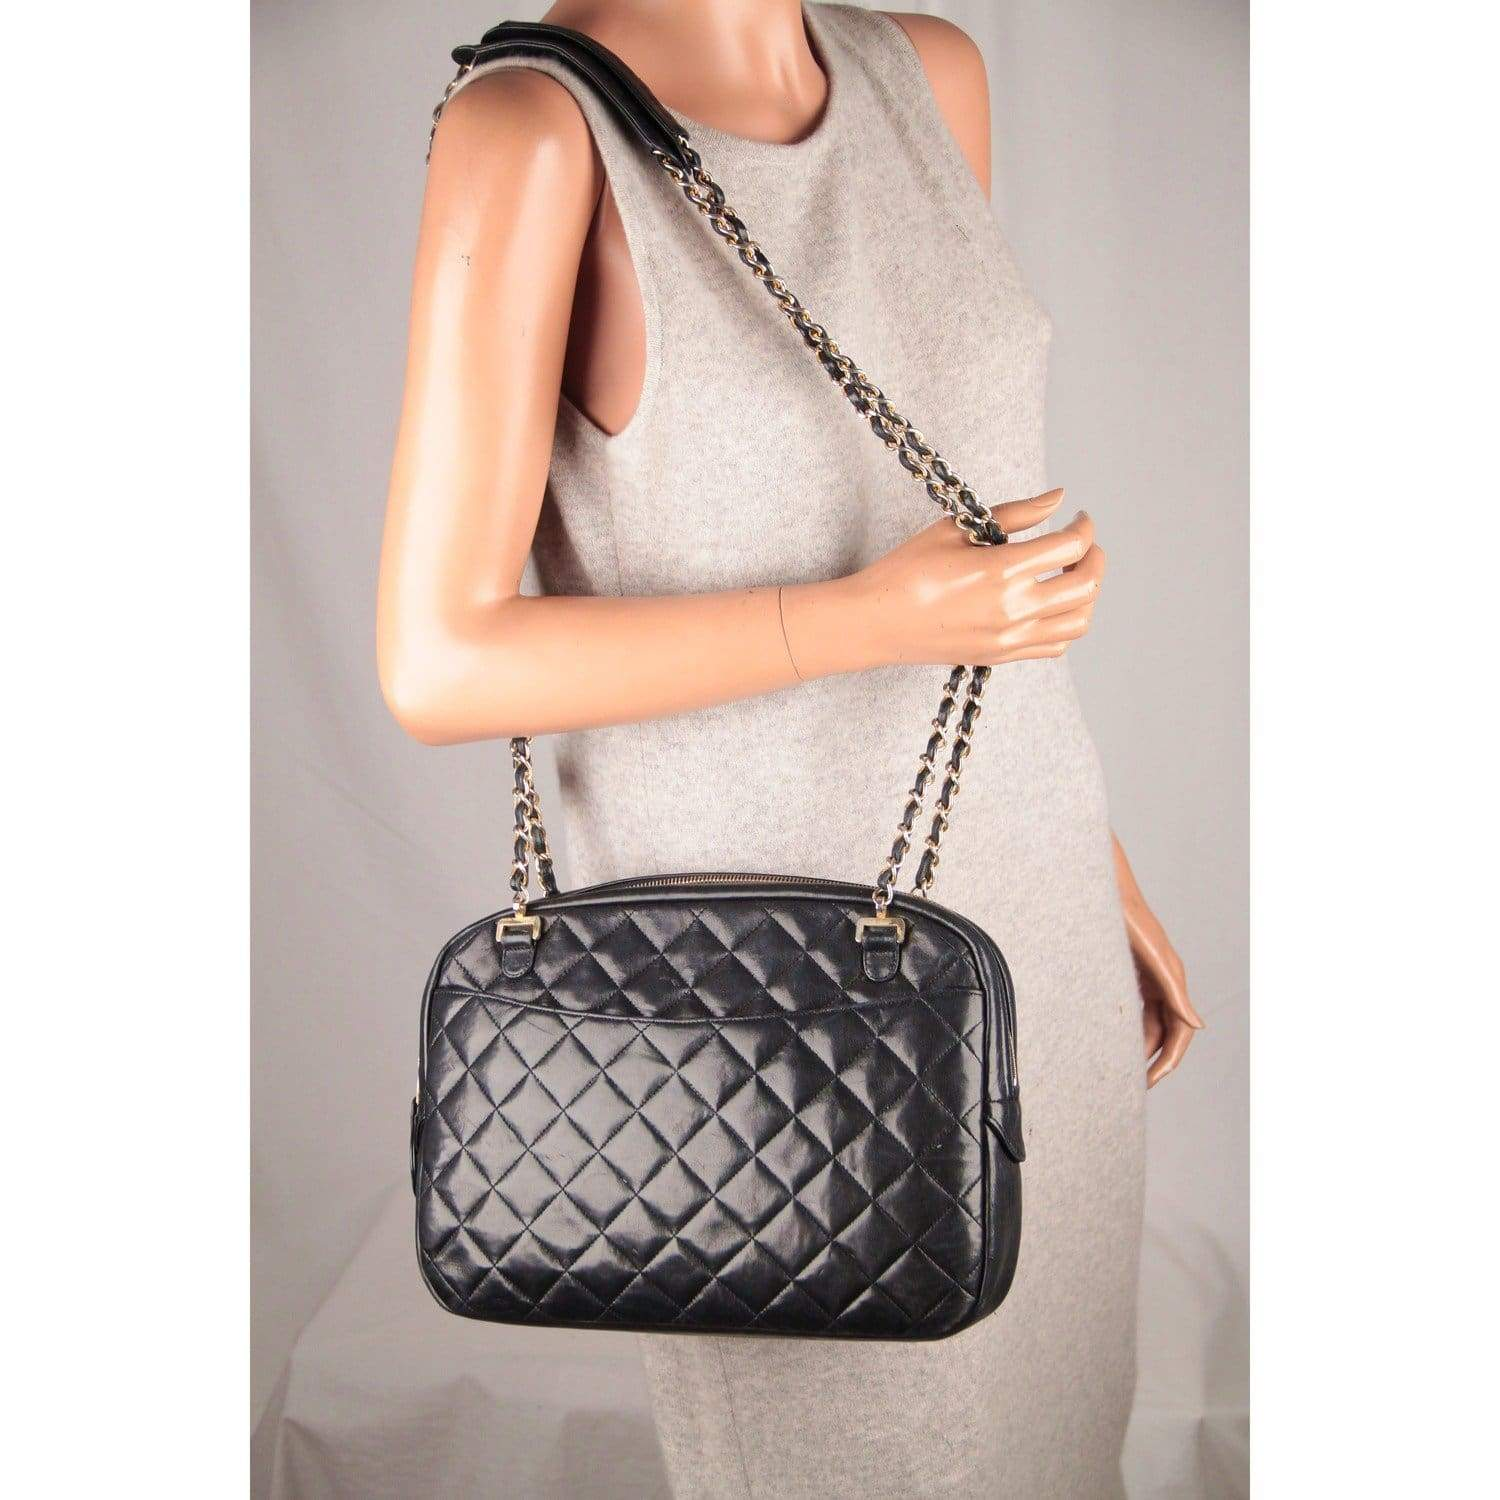 8865b4c8a6b73b Opherty & Ciocci - Chanel Vintage Black Quilted Leather Large Camera ...